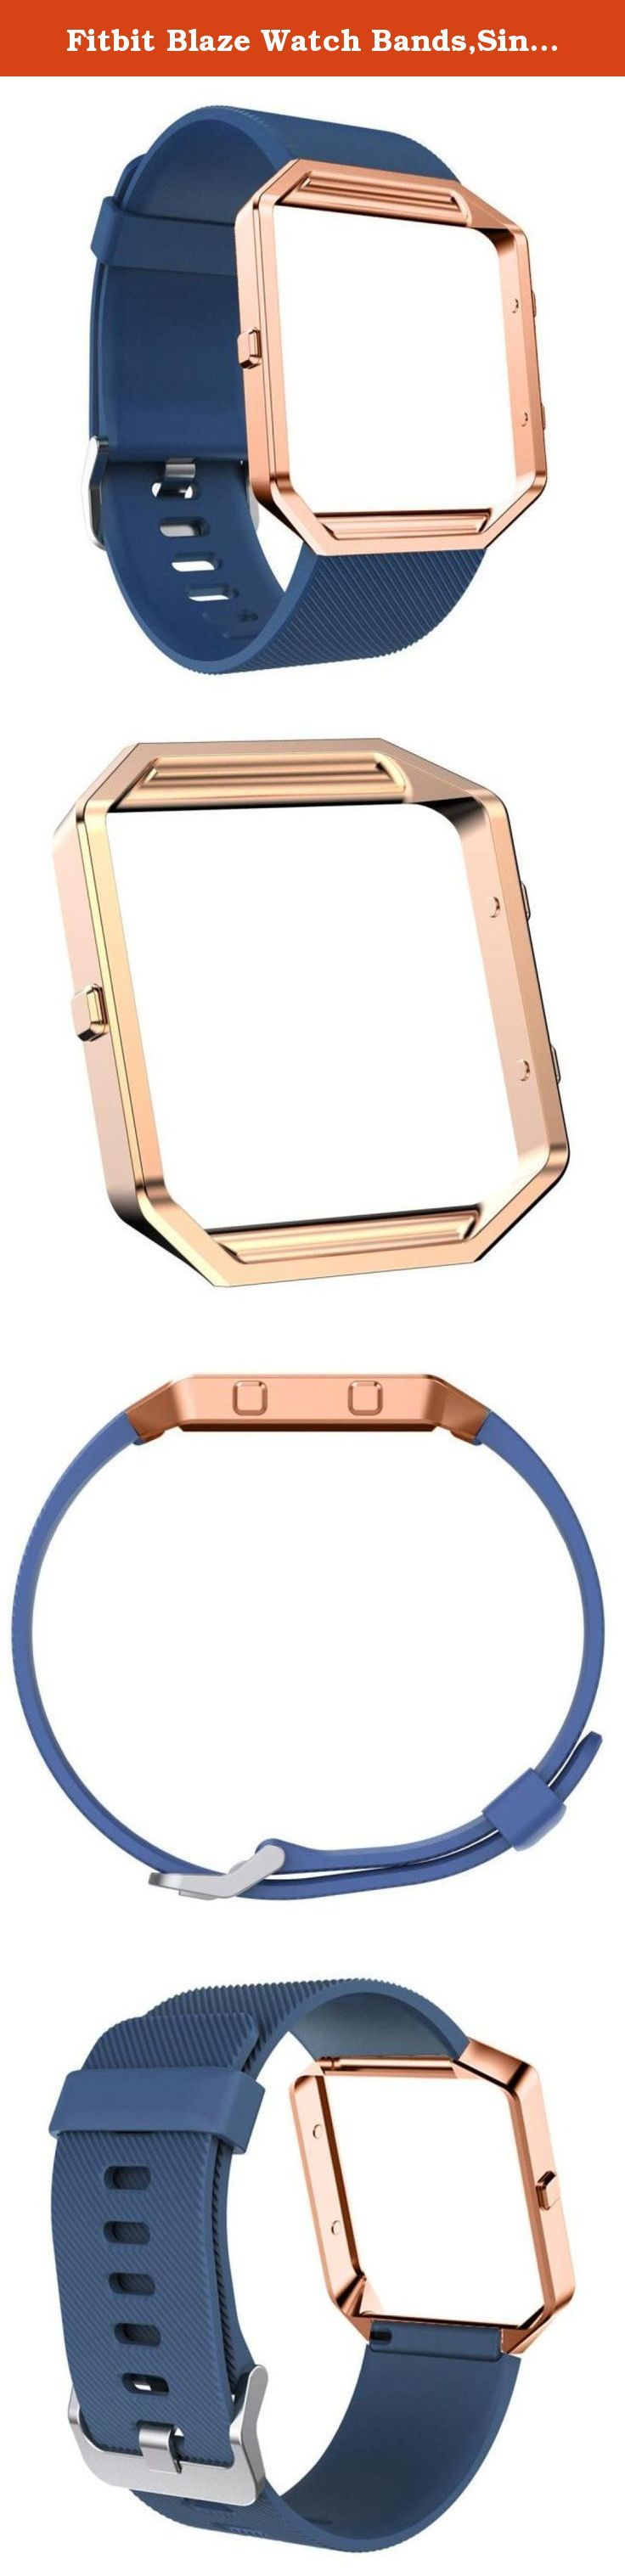 Fitbit Blaze Watch Bands,Siniao Soft Silicone Watch Band Wrist strap+Metal Frame+HD Film For Fitbit Blaze Watch (A). ☛:Package Include: ☛: 1pc Wristband(without retail package)+ 1pc Rose Gold Metal frame +HD Film Protective(Completely fit Watches).